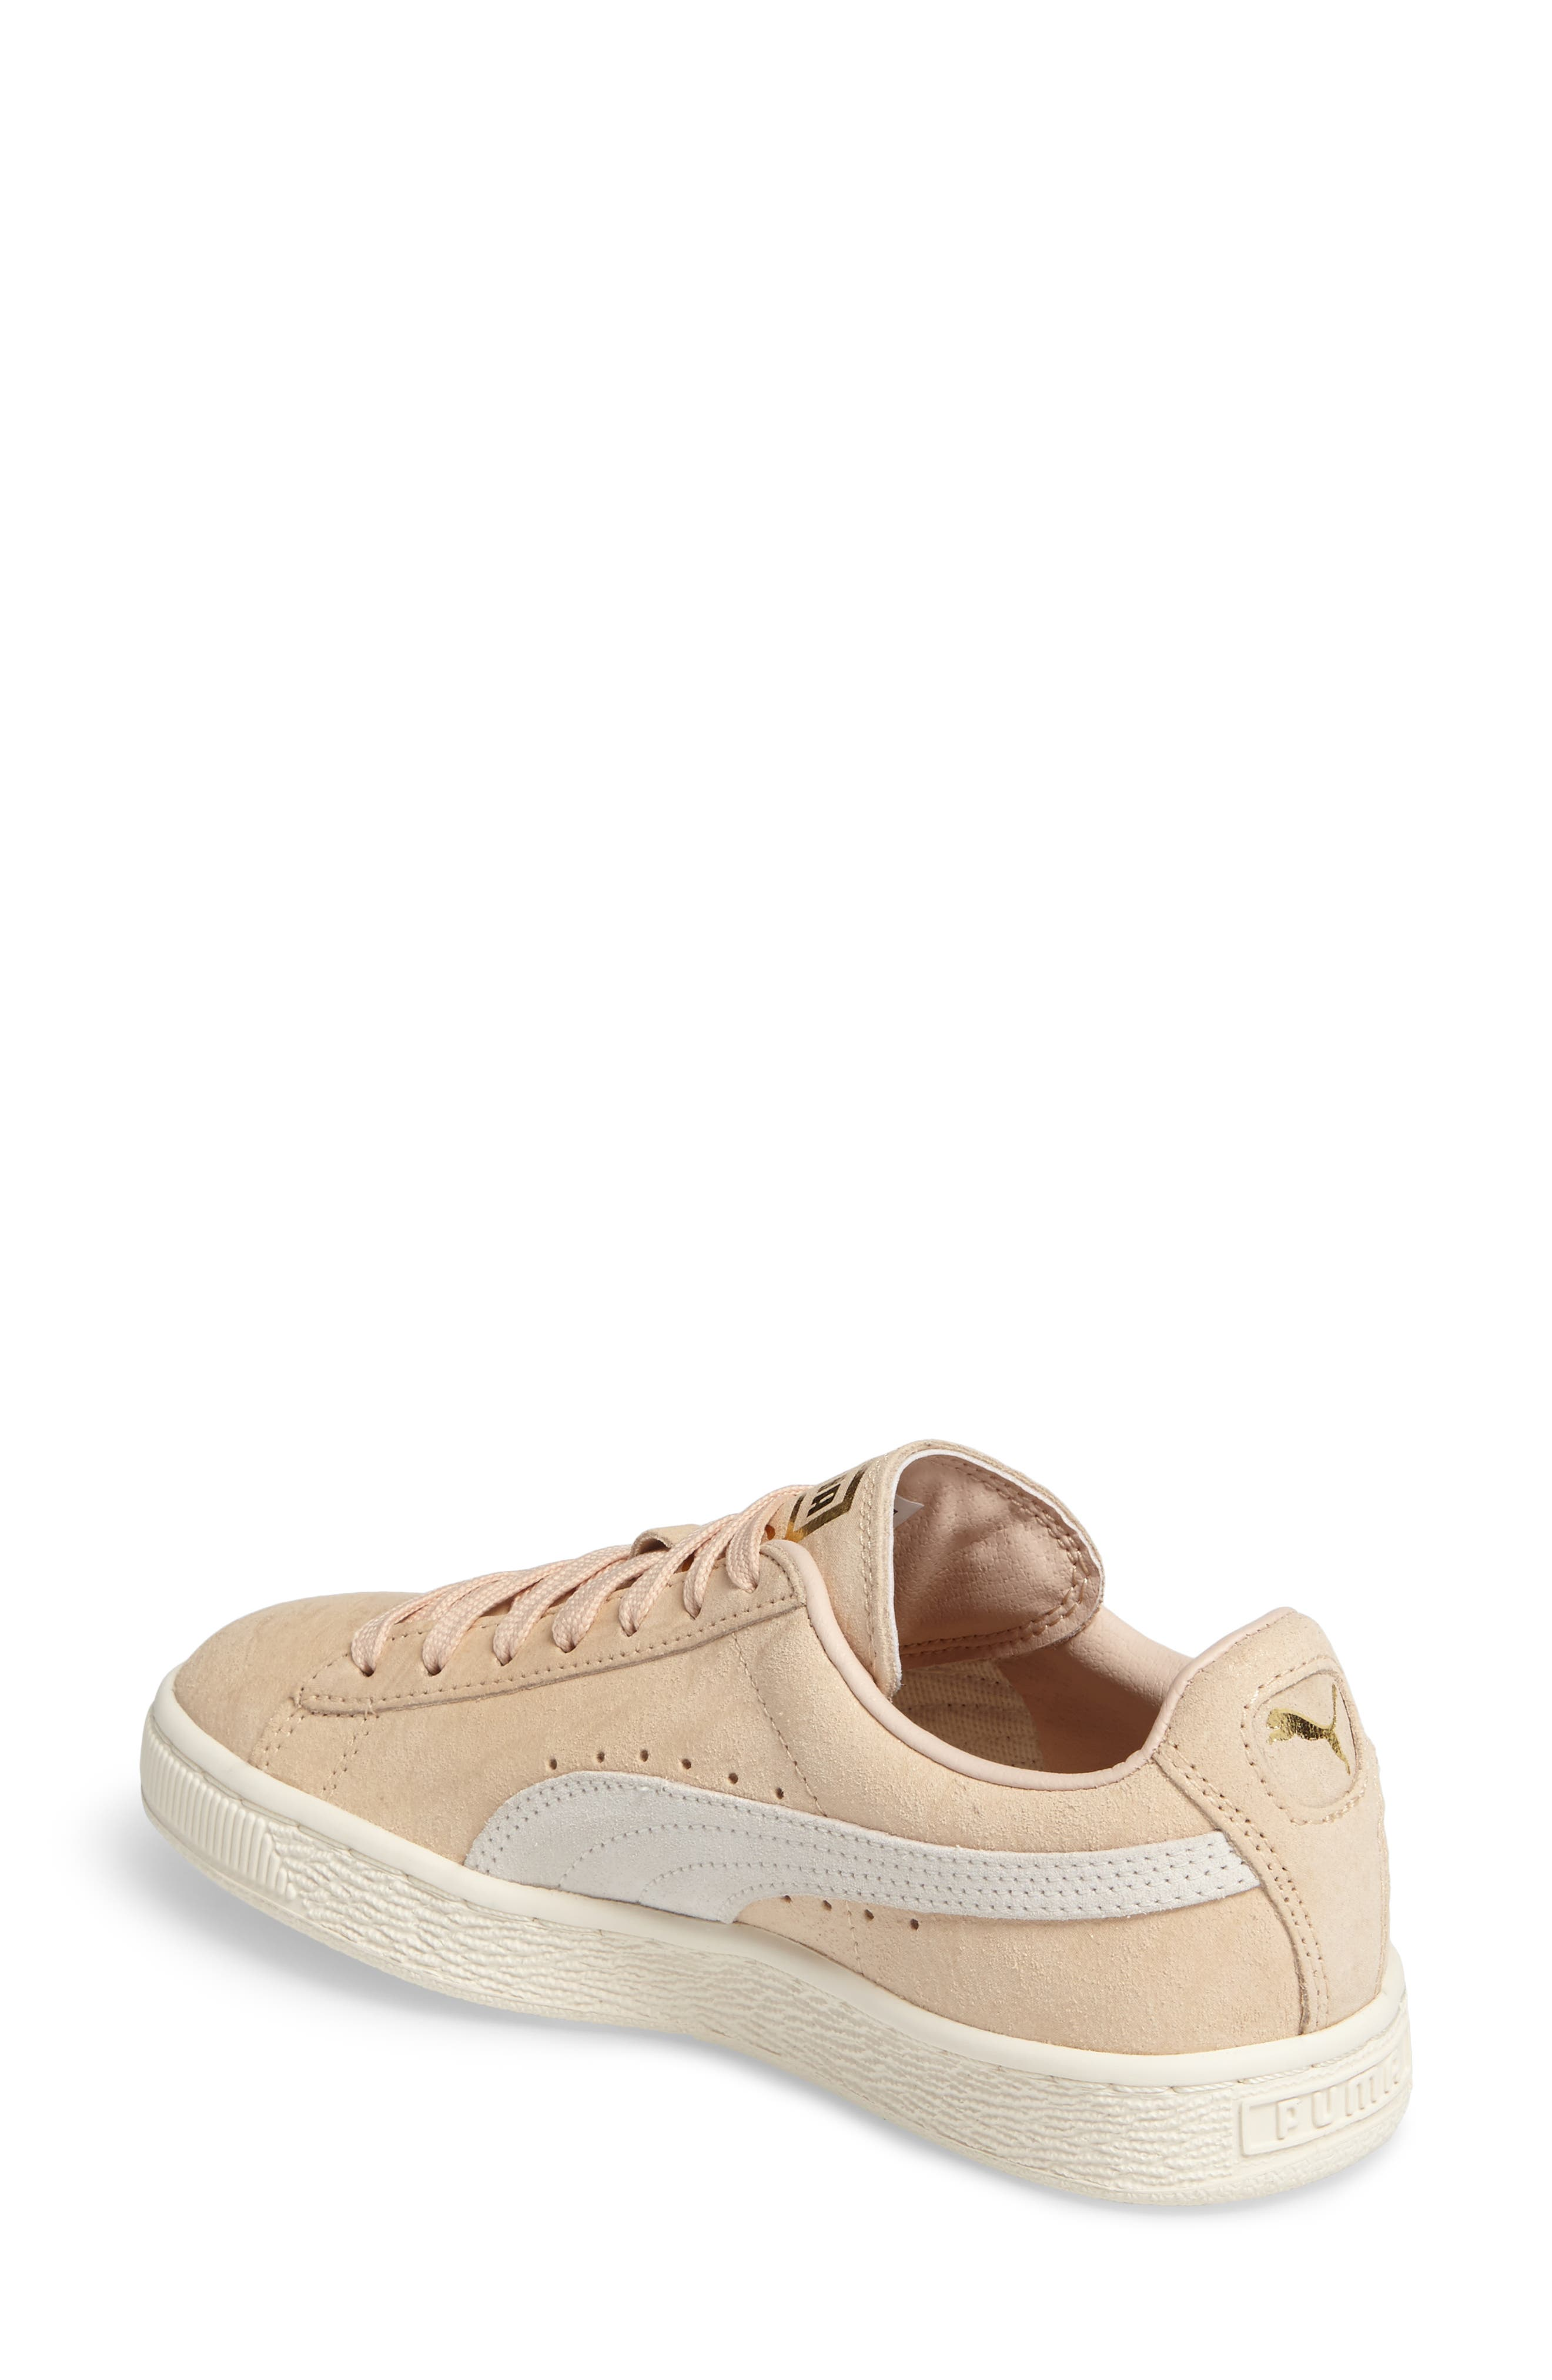 Suede Classic Shine Sneaker,                             Alternate thumbnail 2, color,                             250